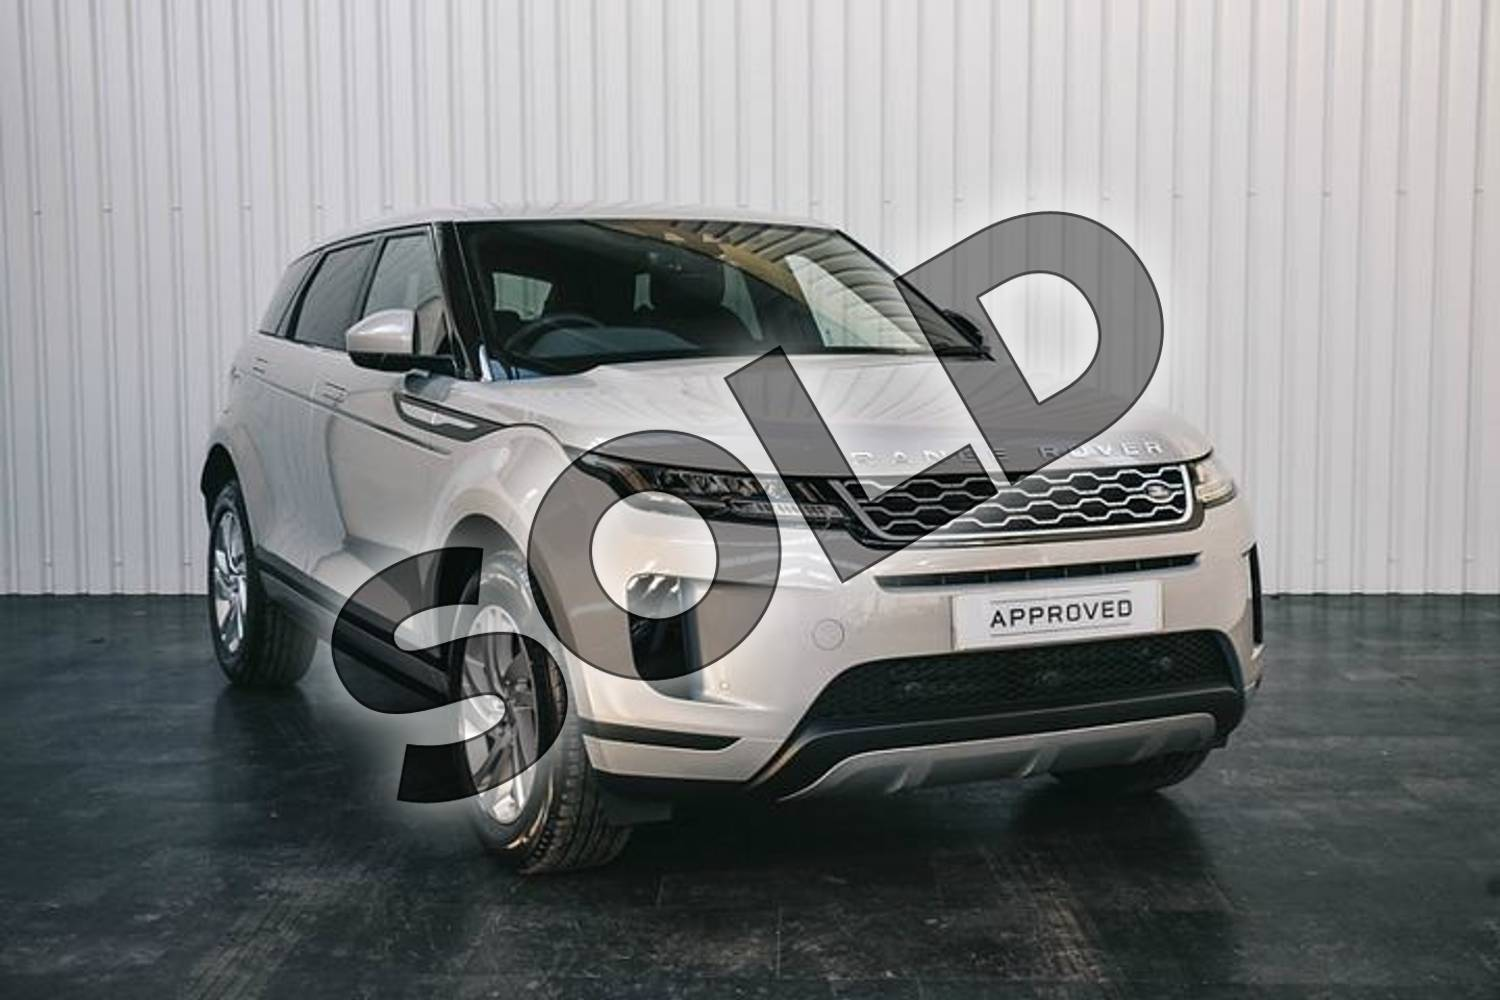 2019 Range Rover Evoque Hatchback 2.0 P200 S 5dr Auto in Seoul Pearl Silver at Listers Land Rover Solihull